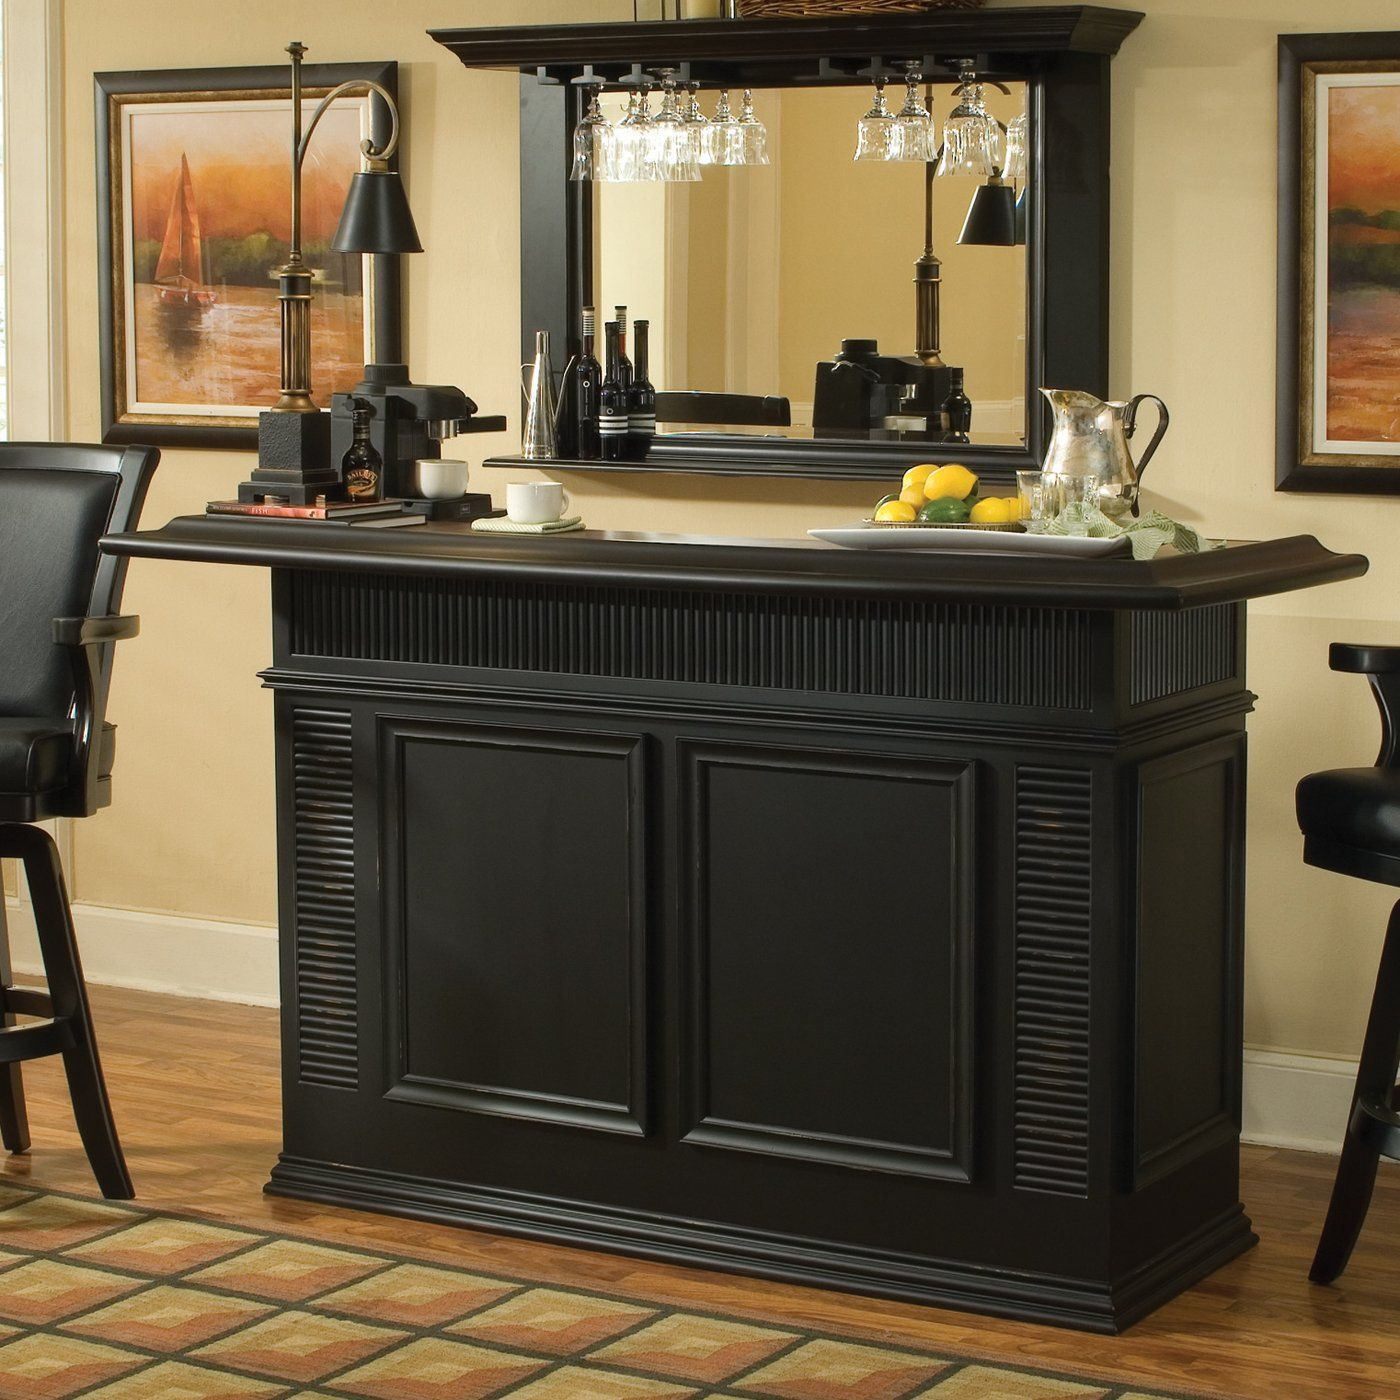 Greystone 9000030 Sussex Home Bar, Antique Black | Ideas for stuff ...